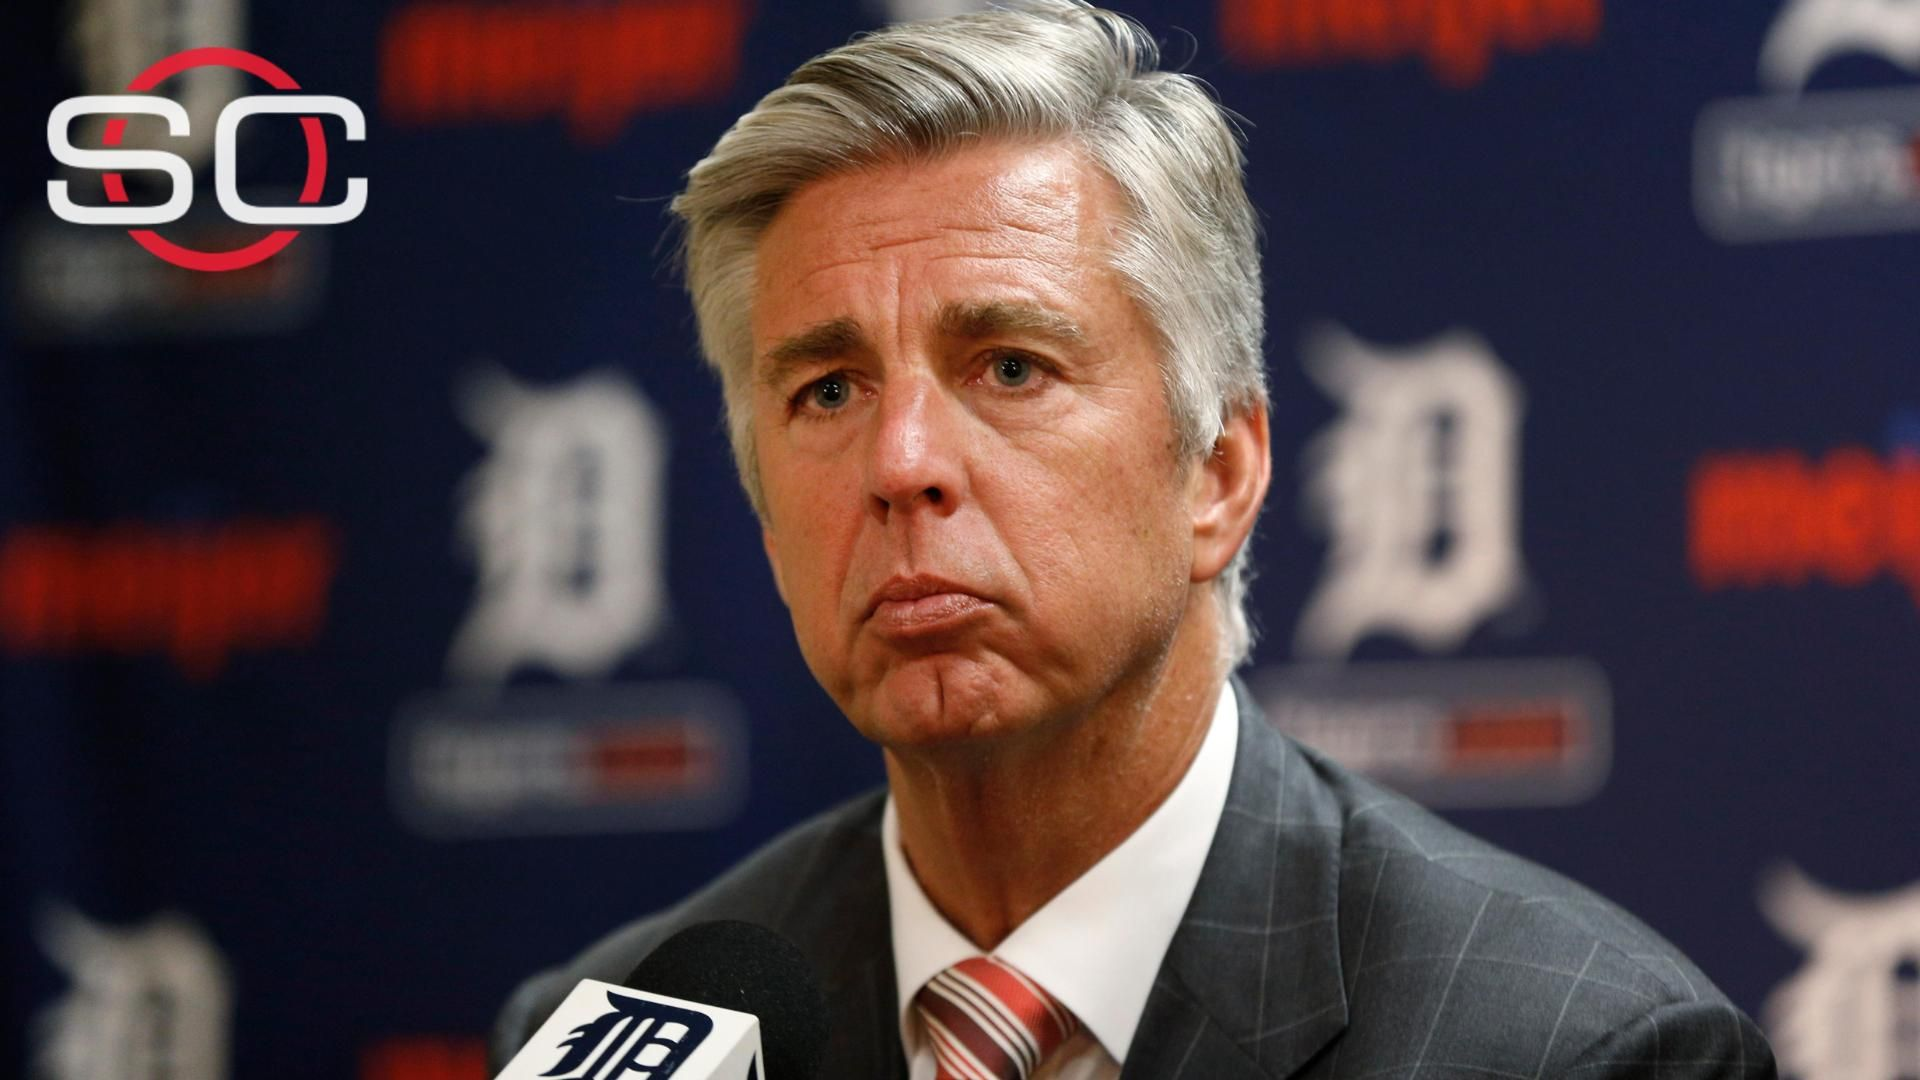 What does Dombrowski bring to Boston?